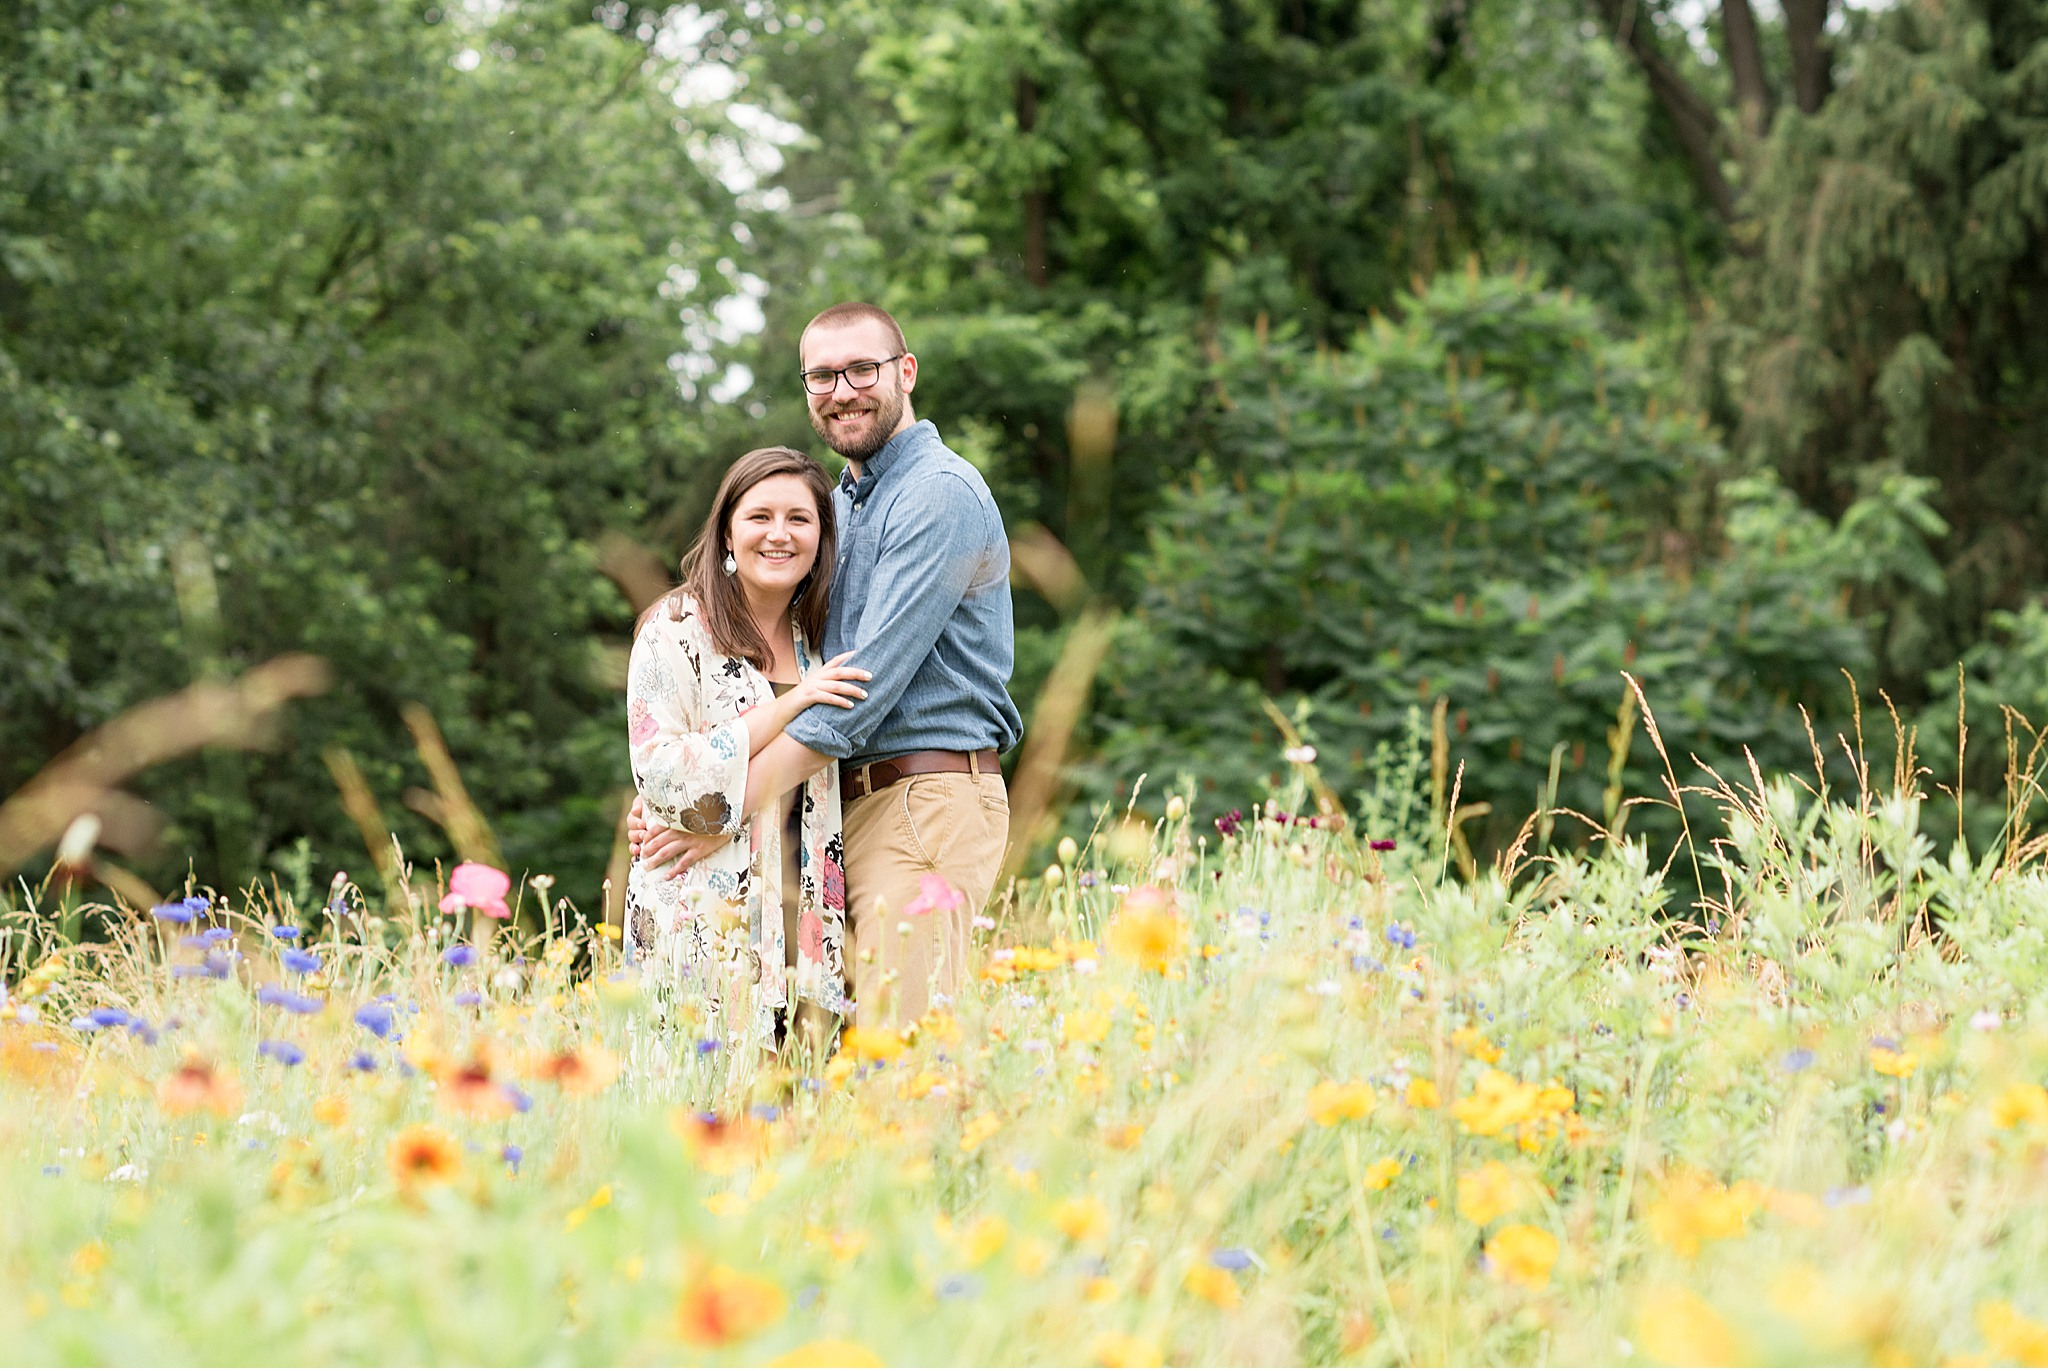 Chiques Park Marietta PA Lancaster Wedding Engagement Photographer_3664.jpg